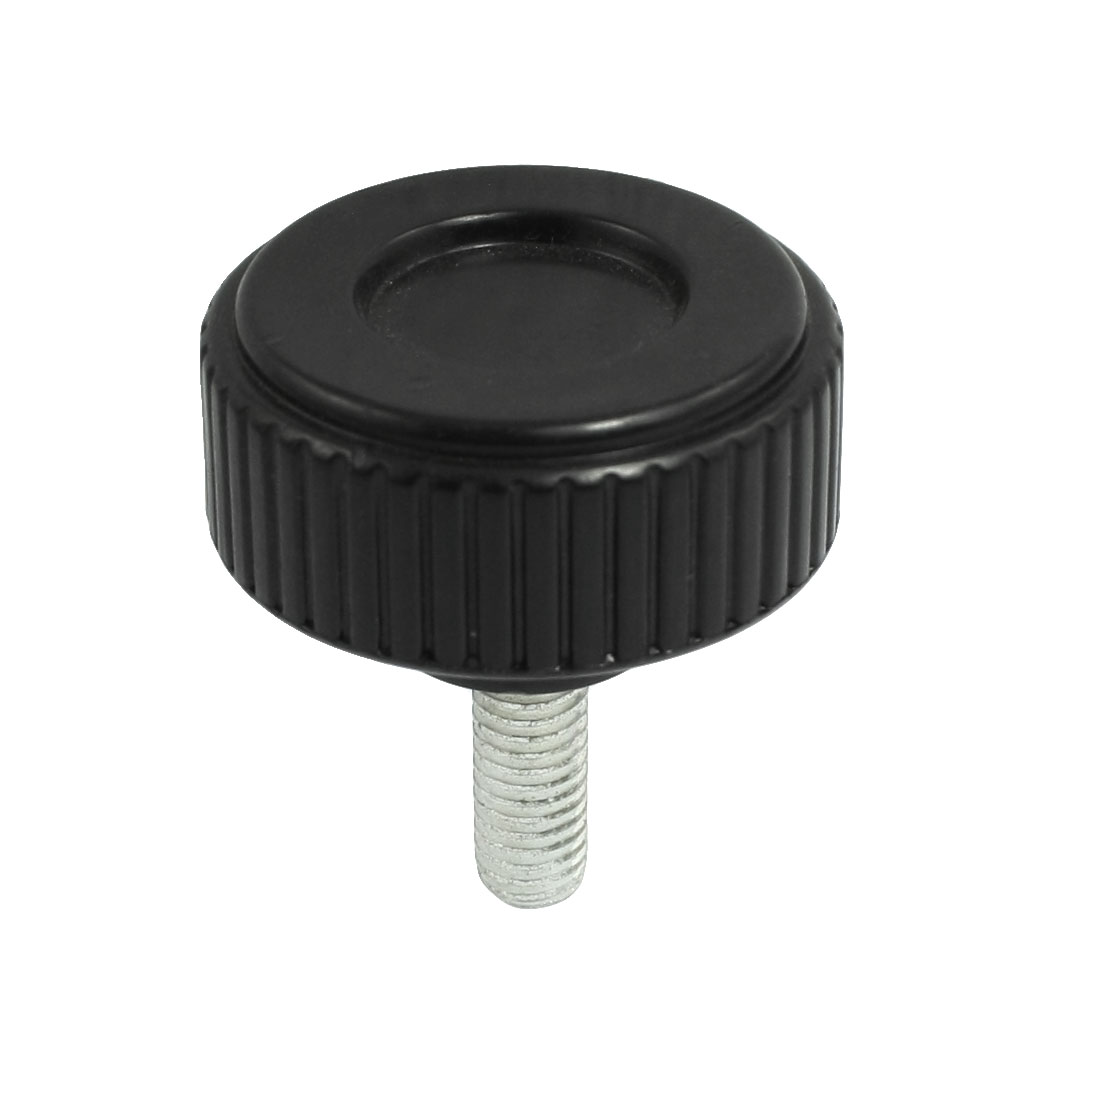 Replacement M8 x 20mm Round Cap Clamping Knob Grip 40mm Head Diameter